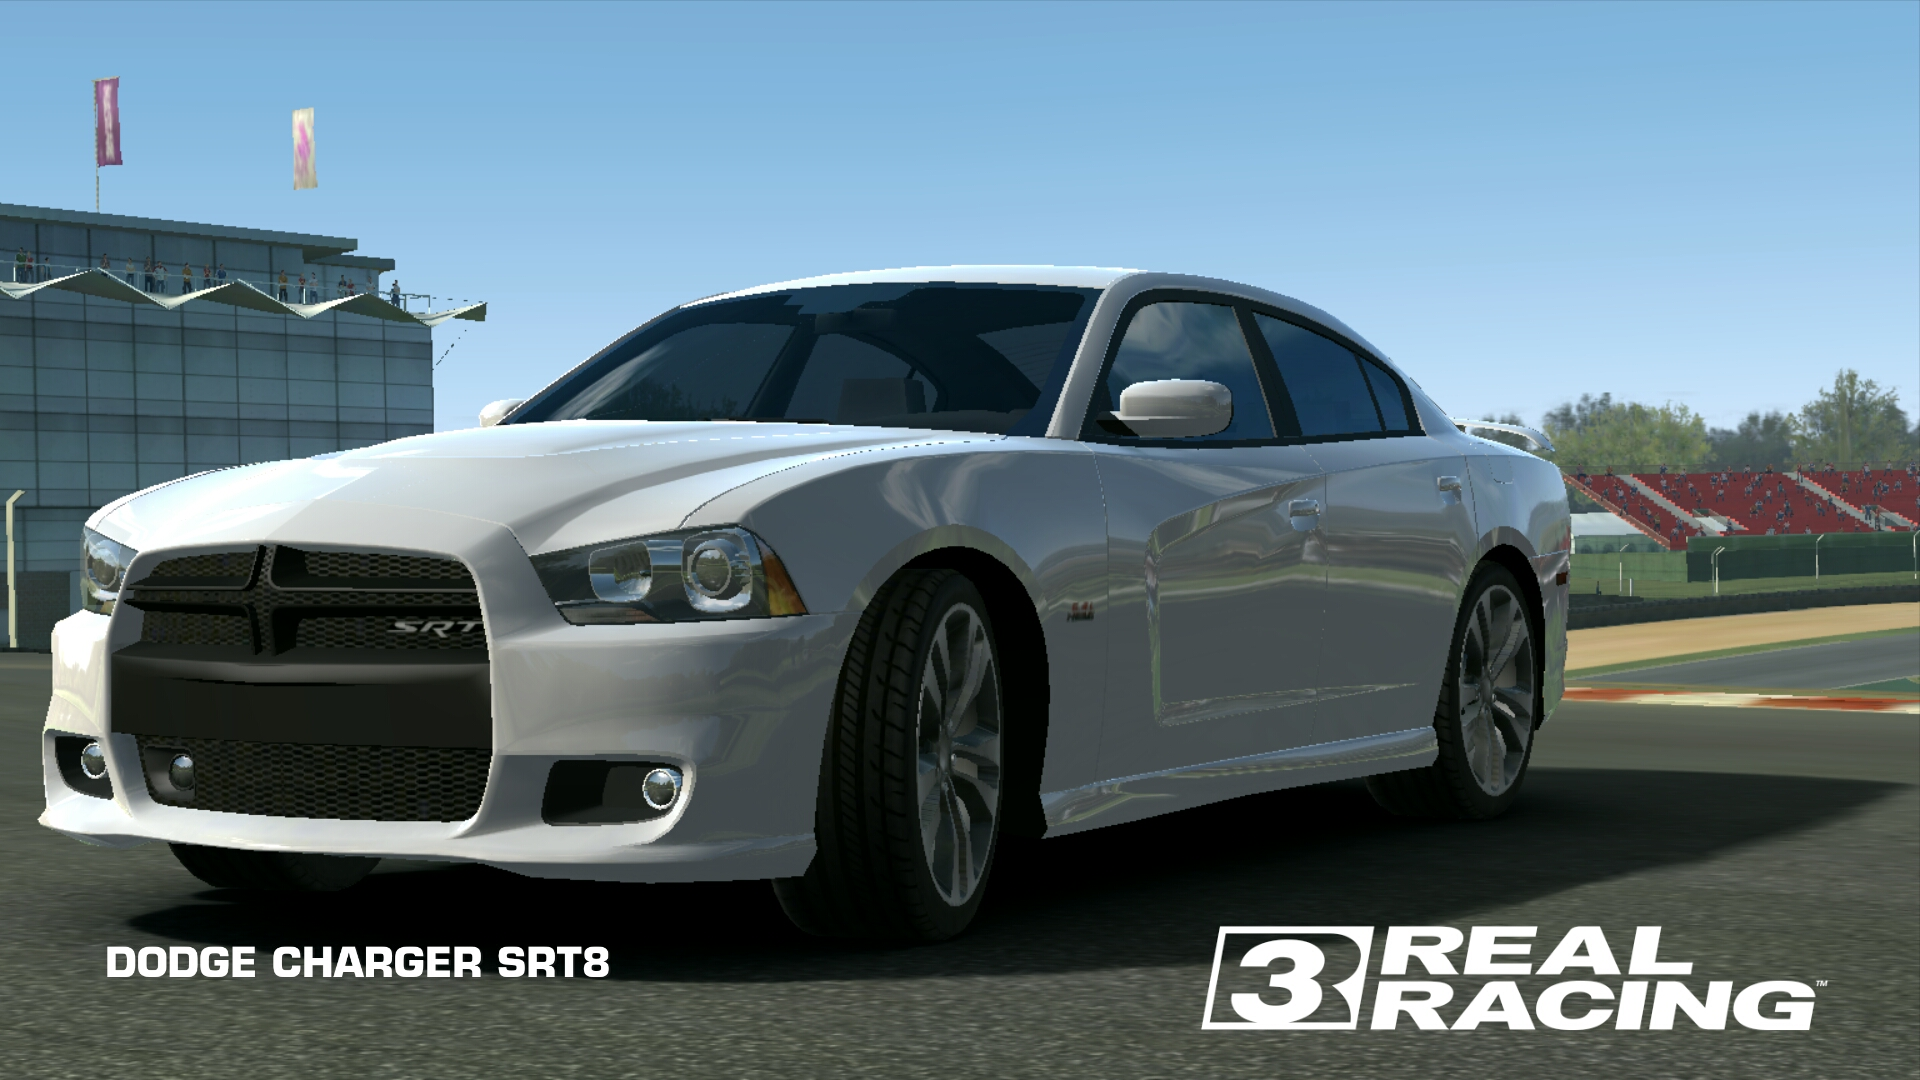 Charger srt8